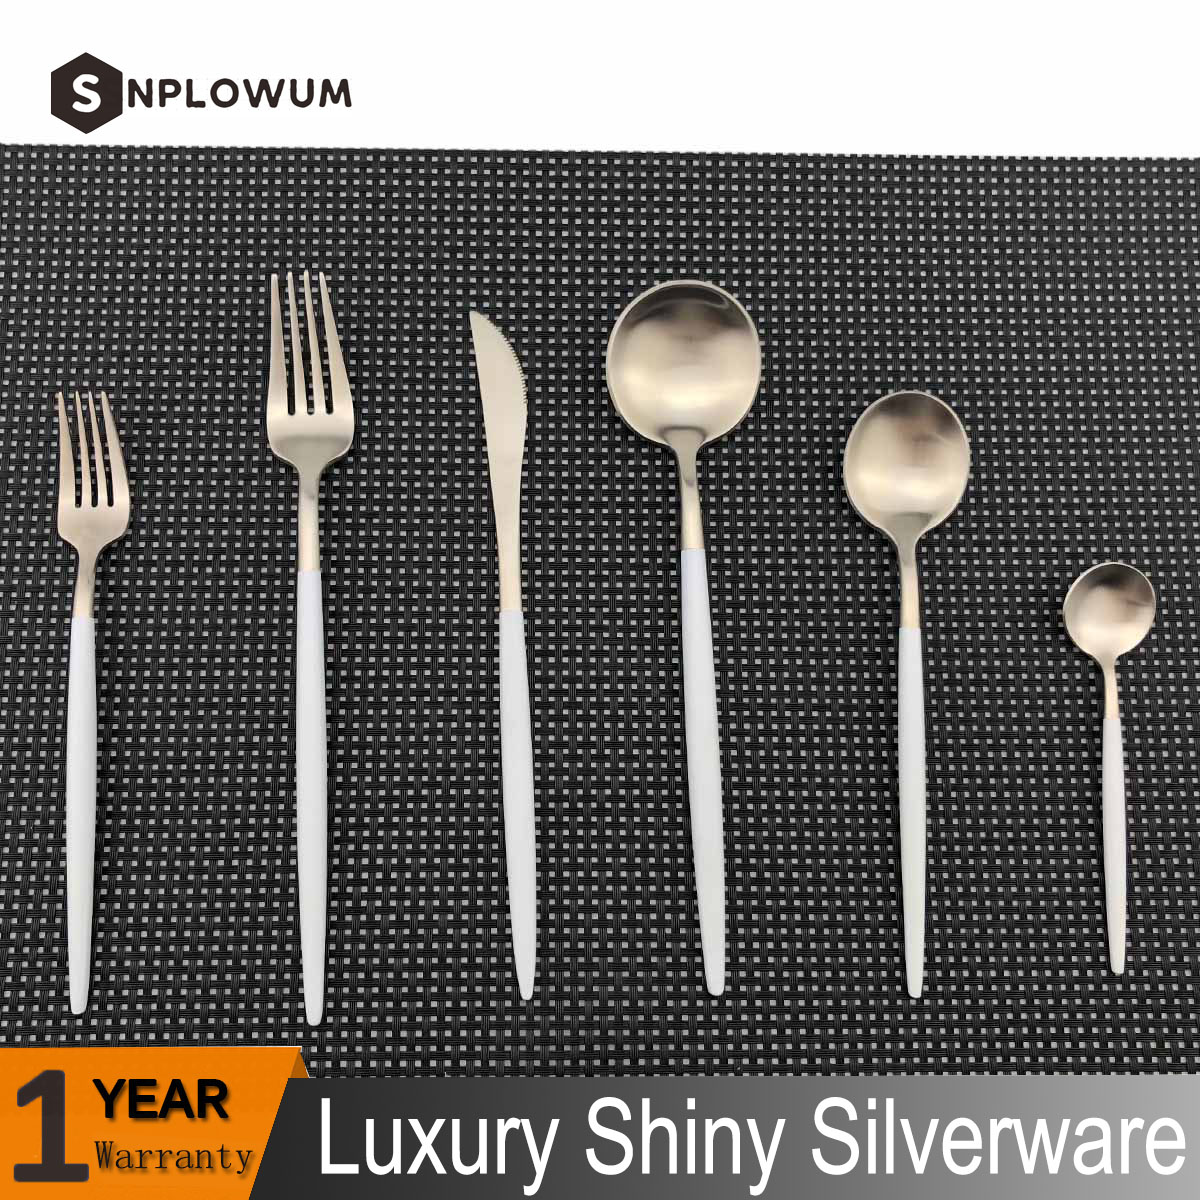 Details About 6 Piece White Handle 18 10 Stainless Steel Silverware Flatware Set Service For 1